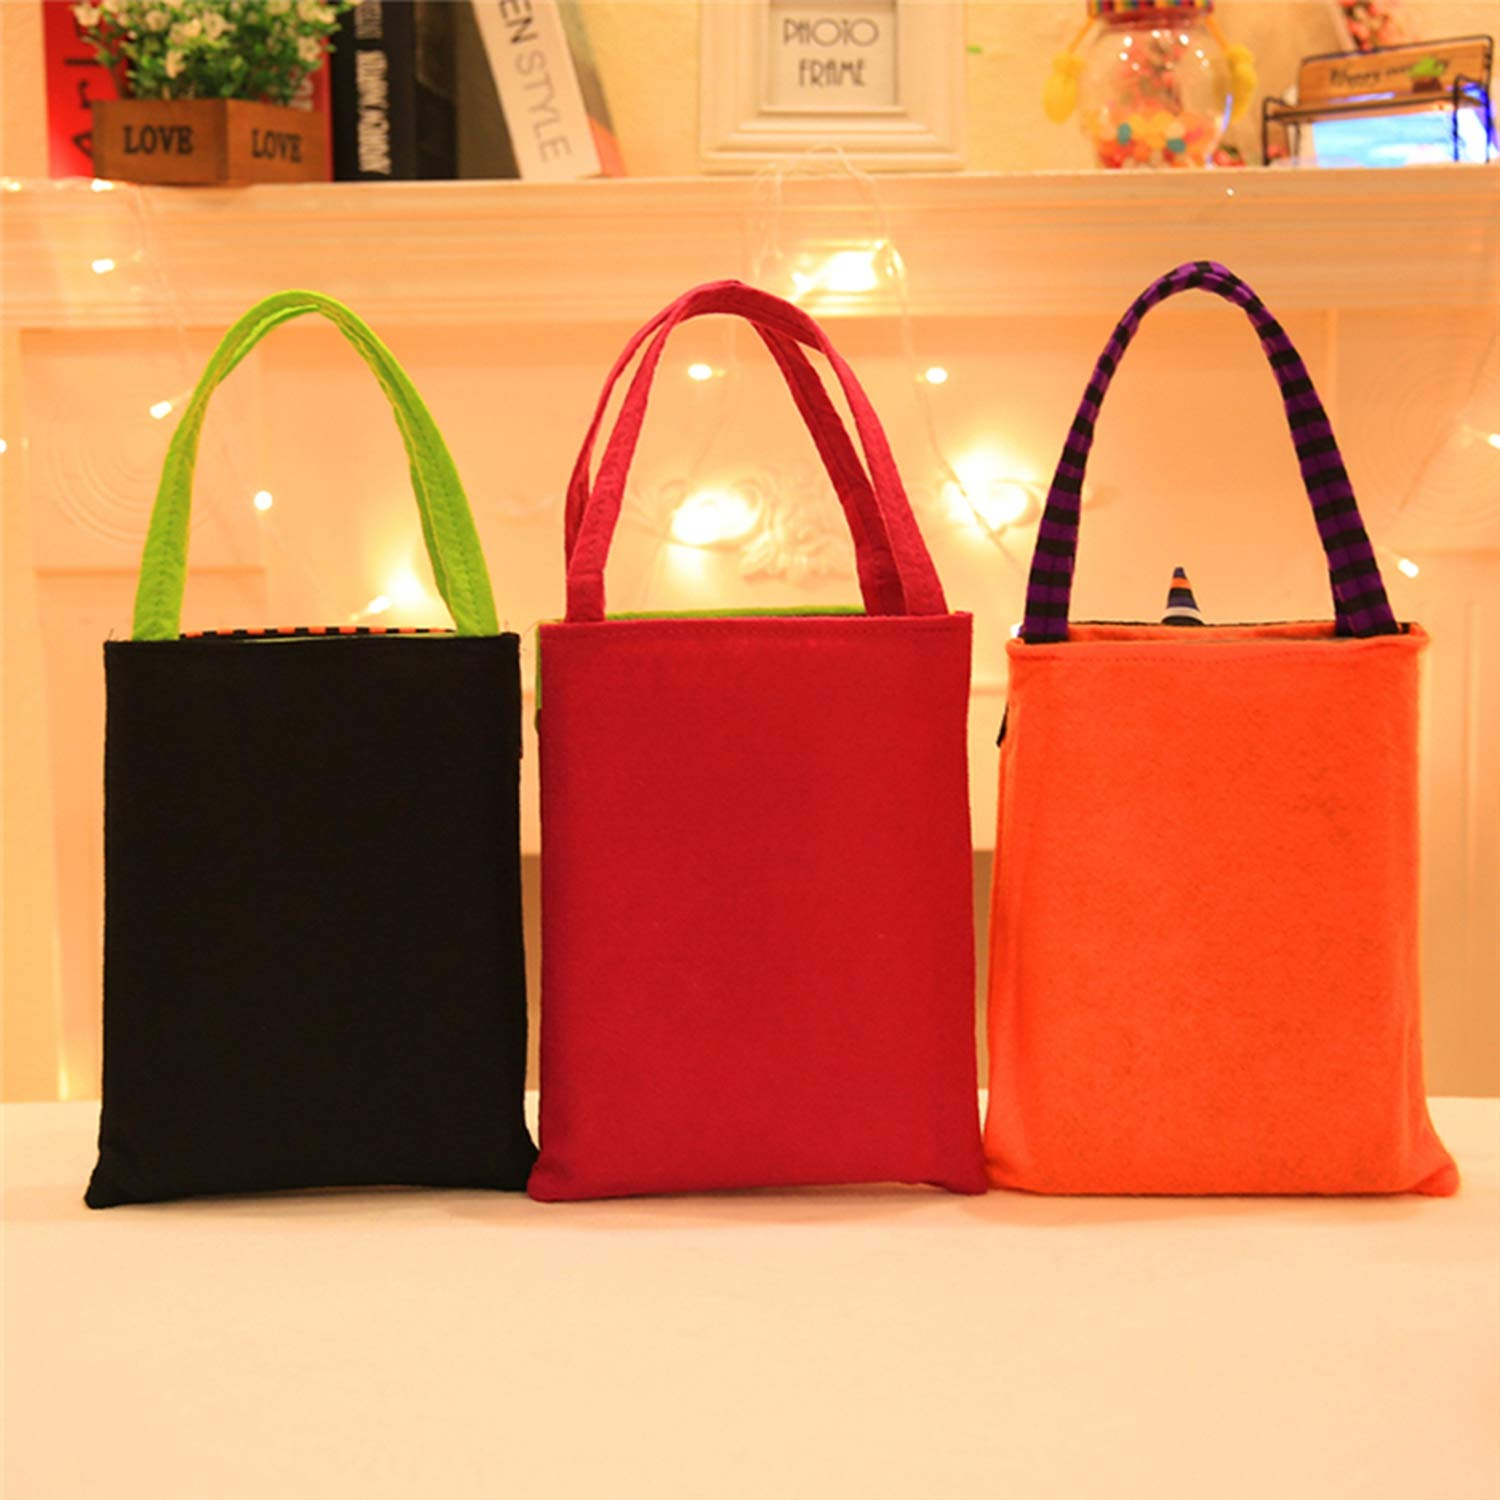 Halloween Candy Bag Gift Bags Pumpkin Trick Or Treat Bags Sacks Gift for Kids Event Party,D by Acereima (Image #4)